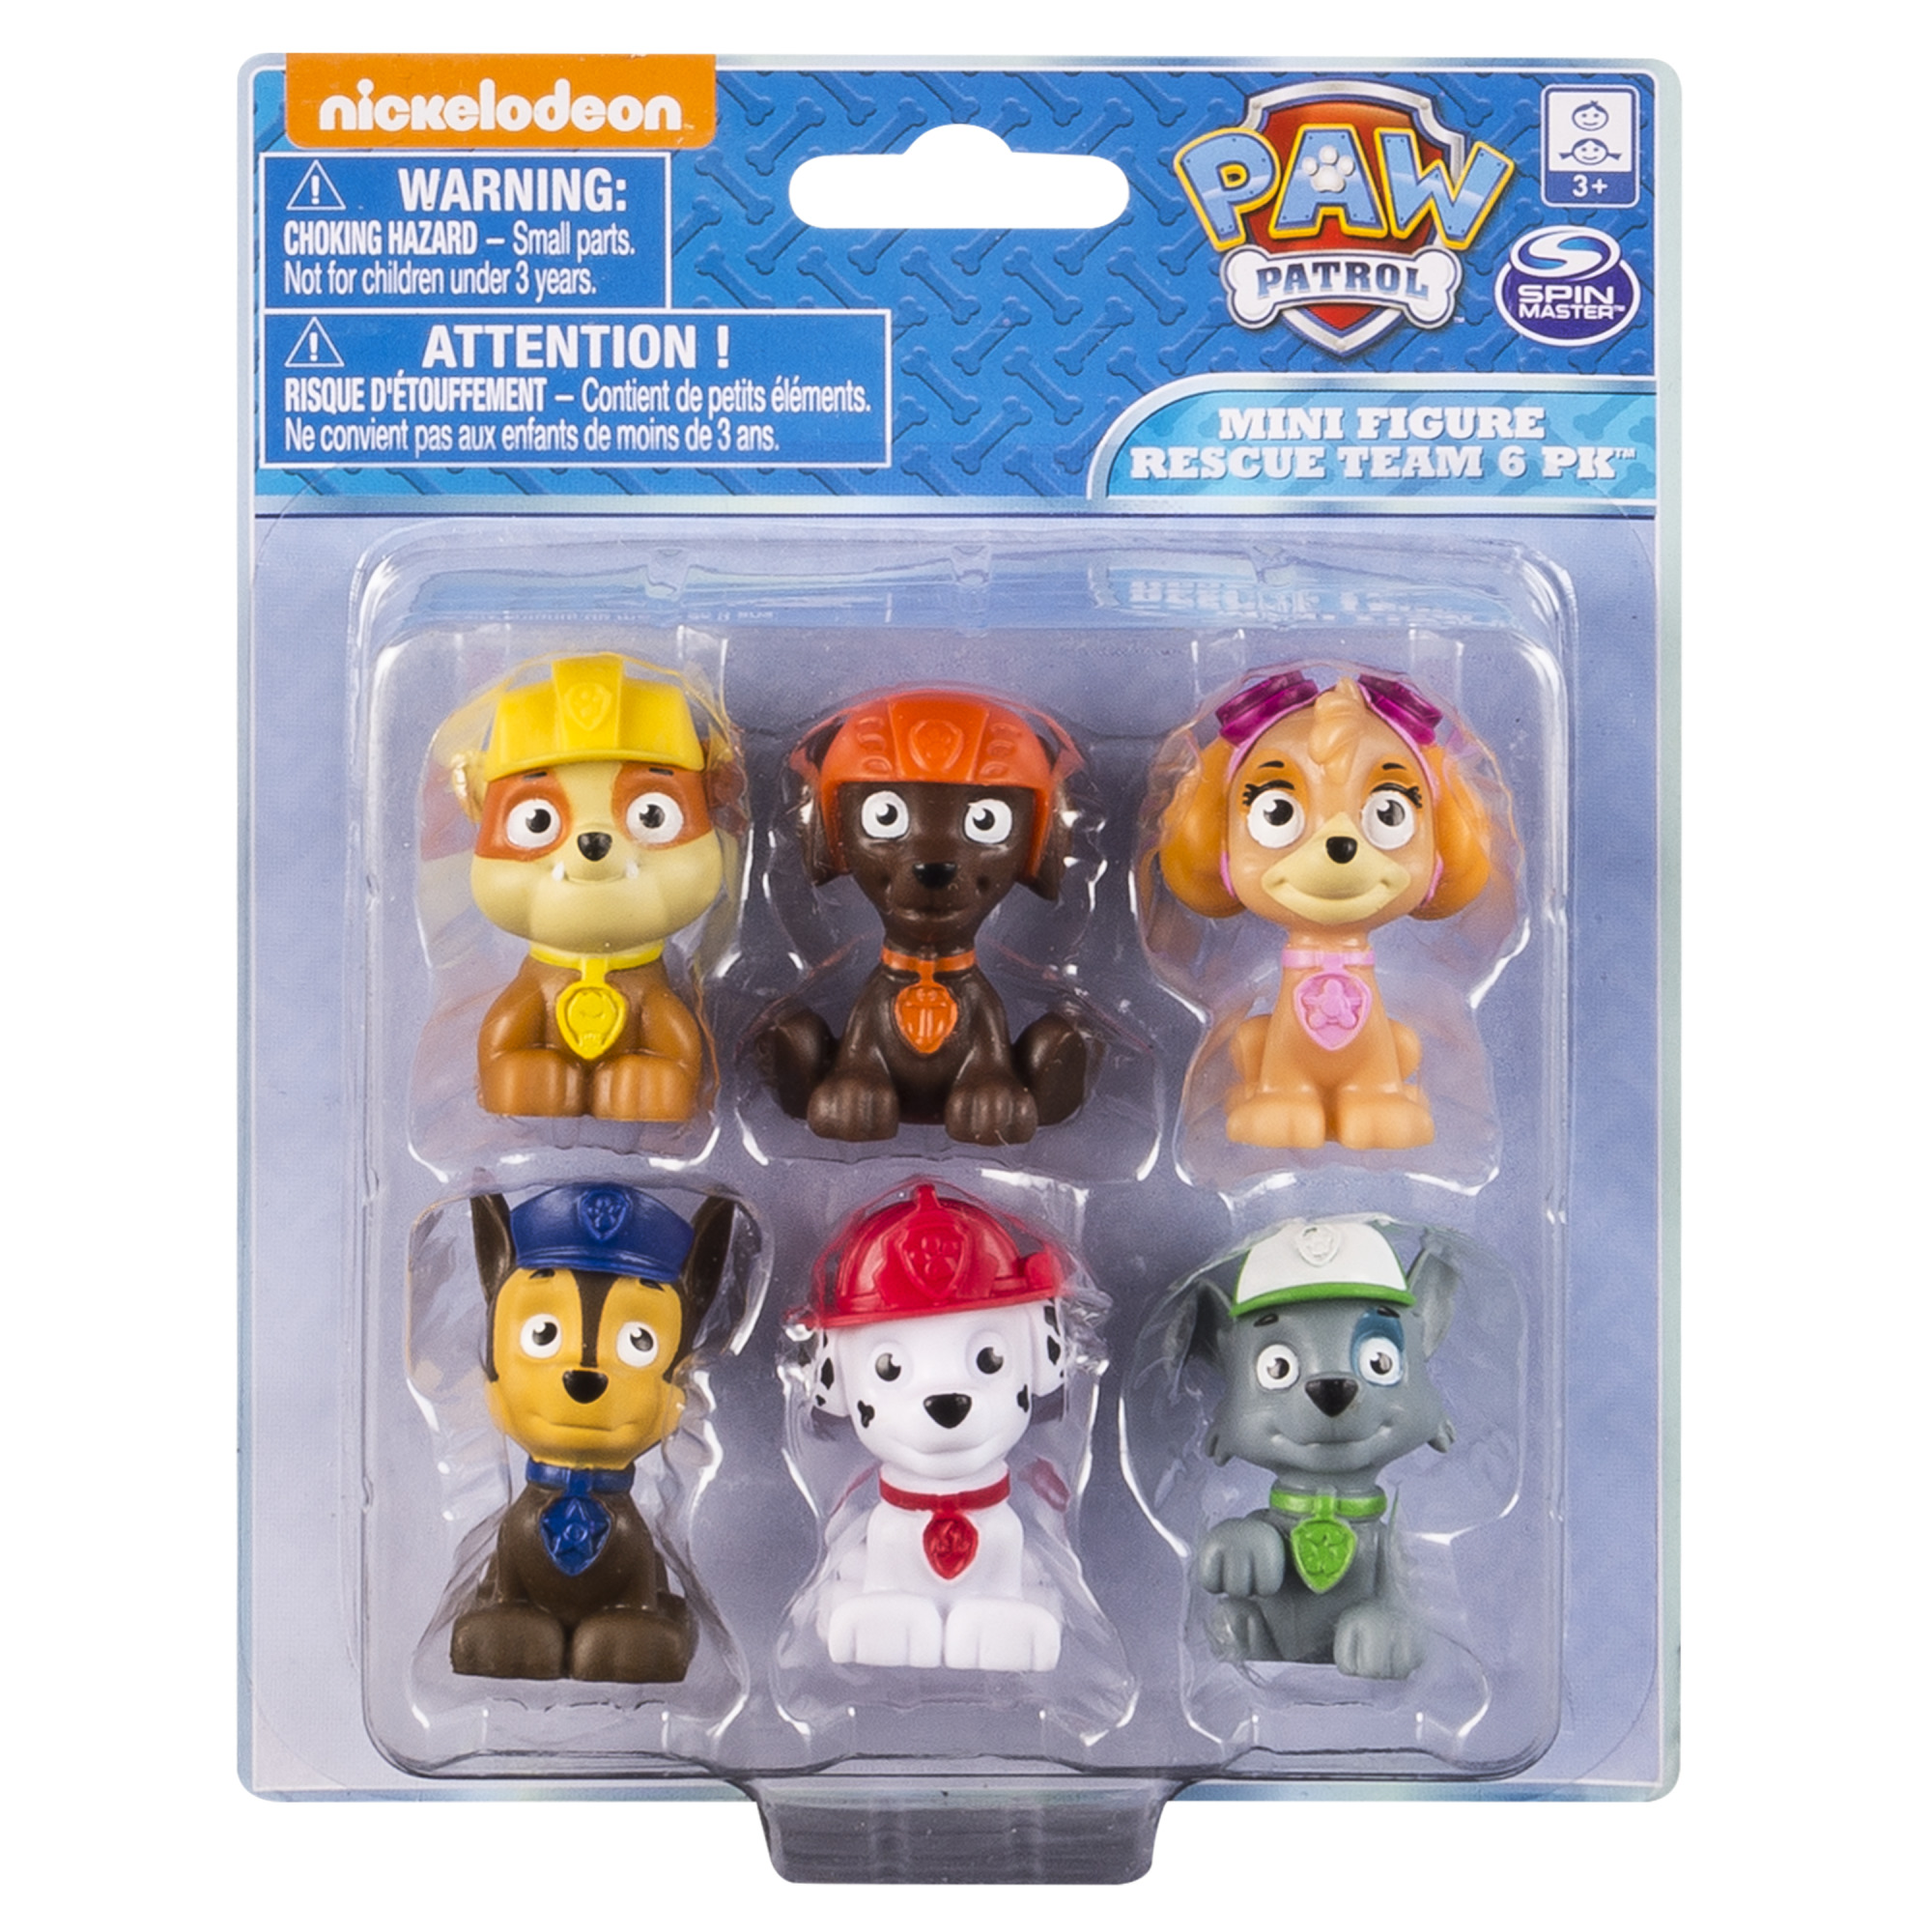 SM120167080000 Paw Patrol Mini Figure Rescue Team 6 Pk